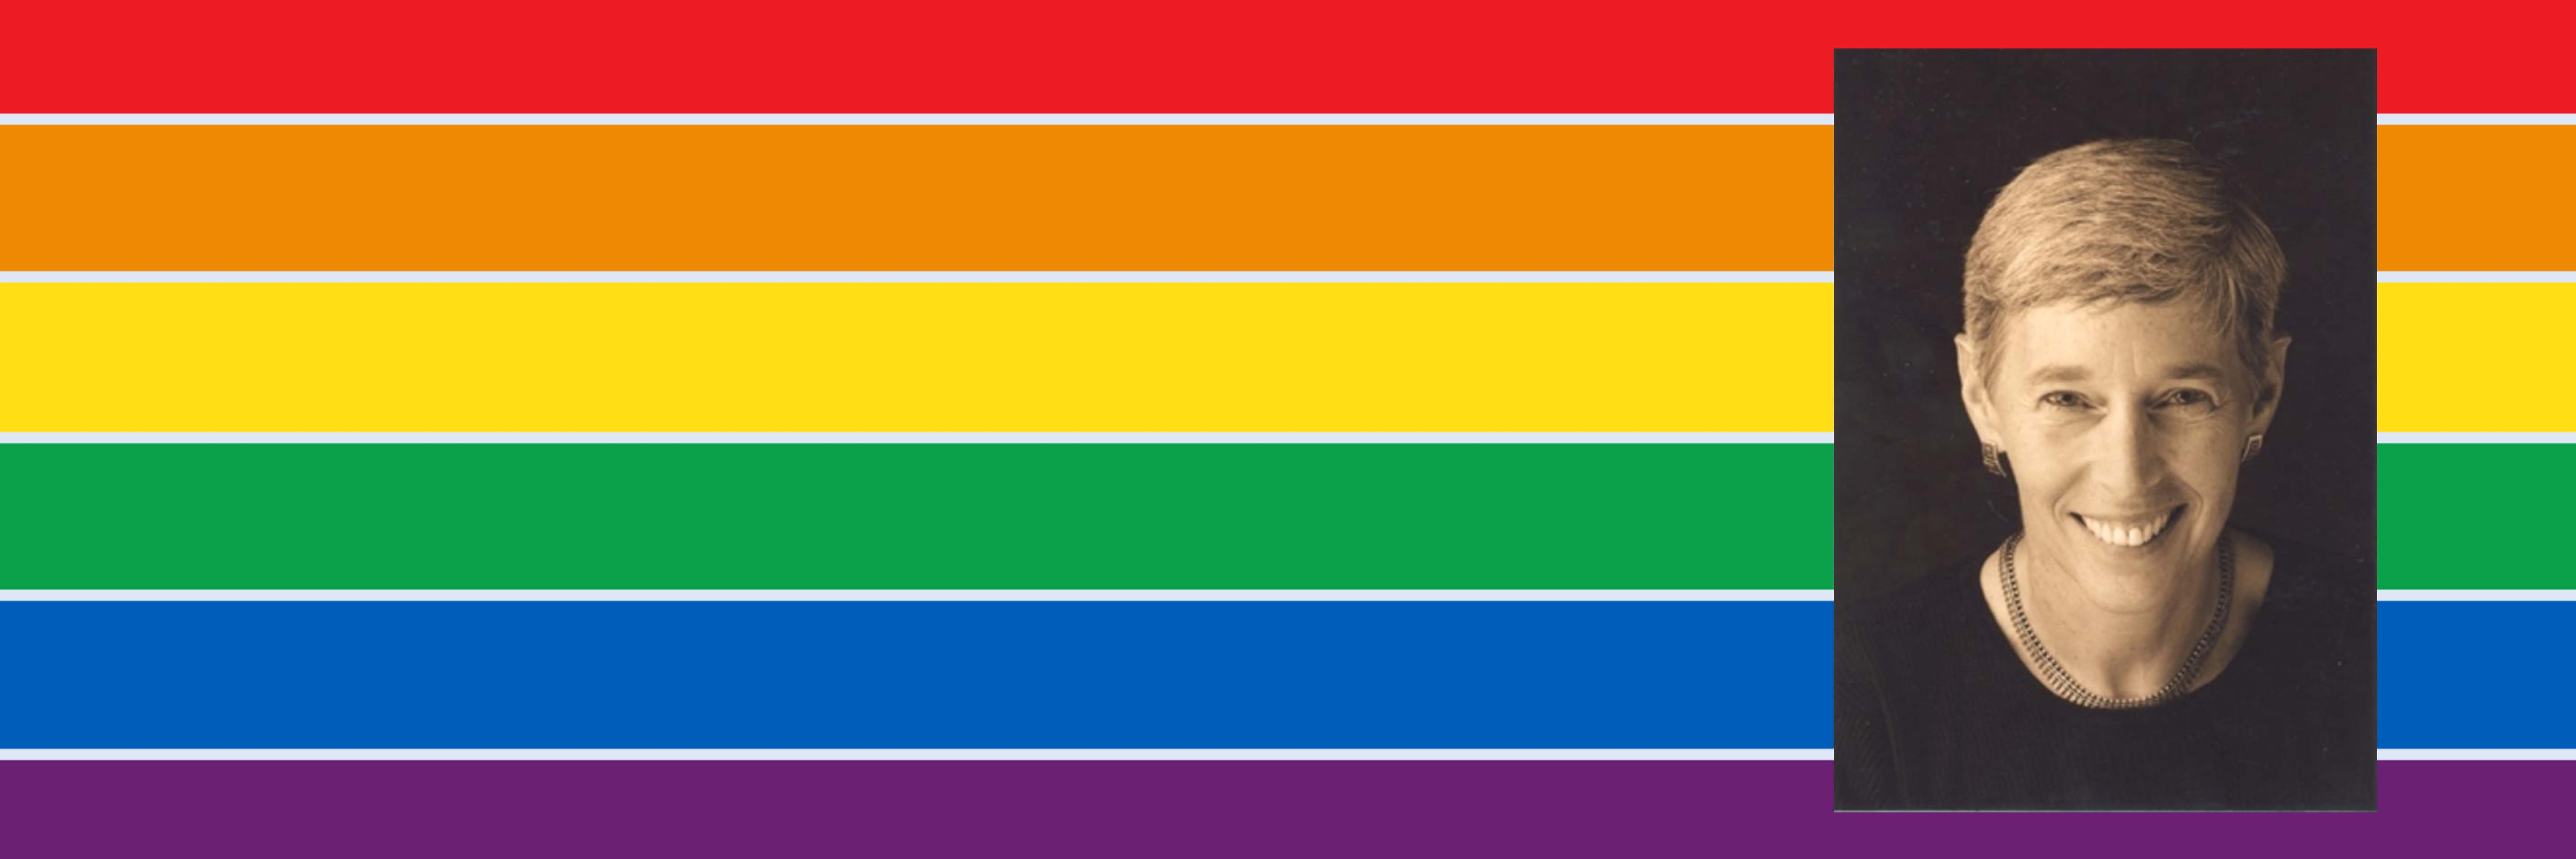 """<a href=""""https://www.templesinaipgh.org/event/pride-shabbat1.html""""                                     target="""""""">                                                                 <span class=""""slider_title"""">                                     Pride Shabbat with Guest Speaker Rabbi Dr. Sue Levi Elwell, Friday, June 11, 7 PM                                </span>                                                                 </a>                                                                                                                                                                                       <span class=""""slider_description"""">Join the Pride Tribe at Temple Sinai for our 7th Annual Pride Shabbat.</span>                                                                                     <a href=""""https://www.templesinaipgh.org/event/pride-shabbat1.html"""" class=""""slider_link""""                             target="""""""">                             Learn More                            </a>"""